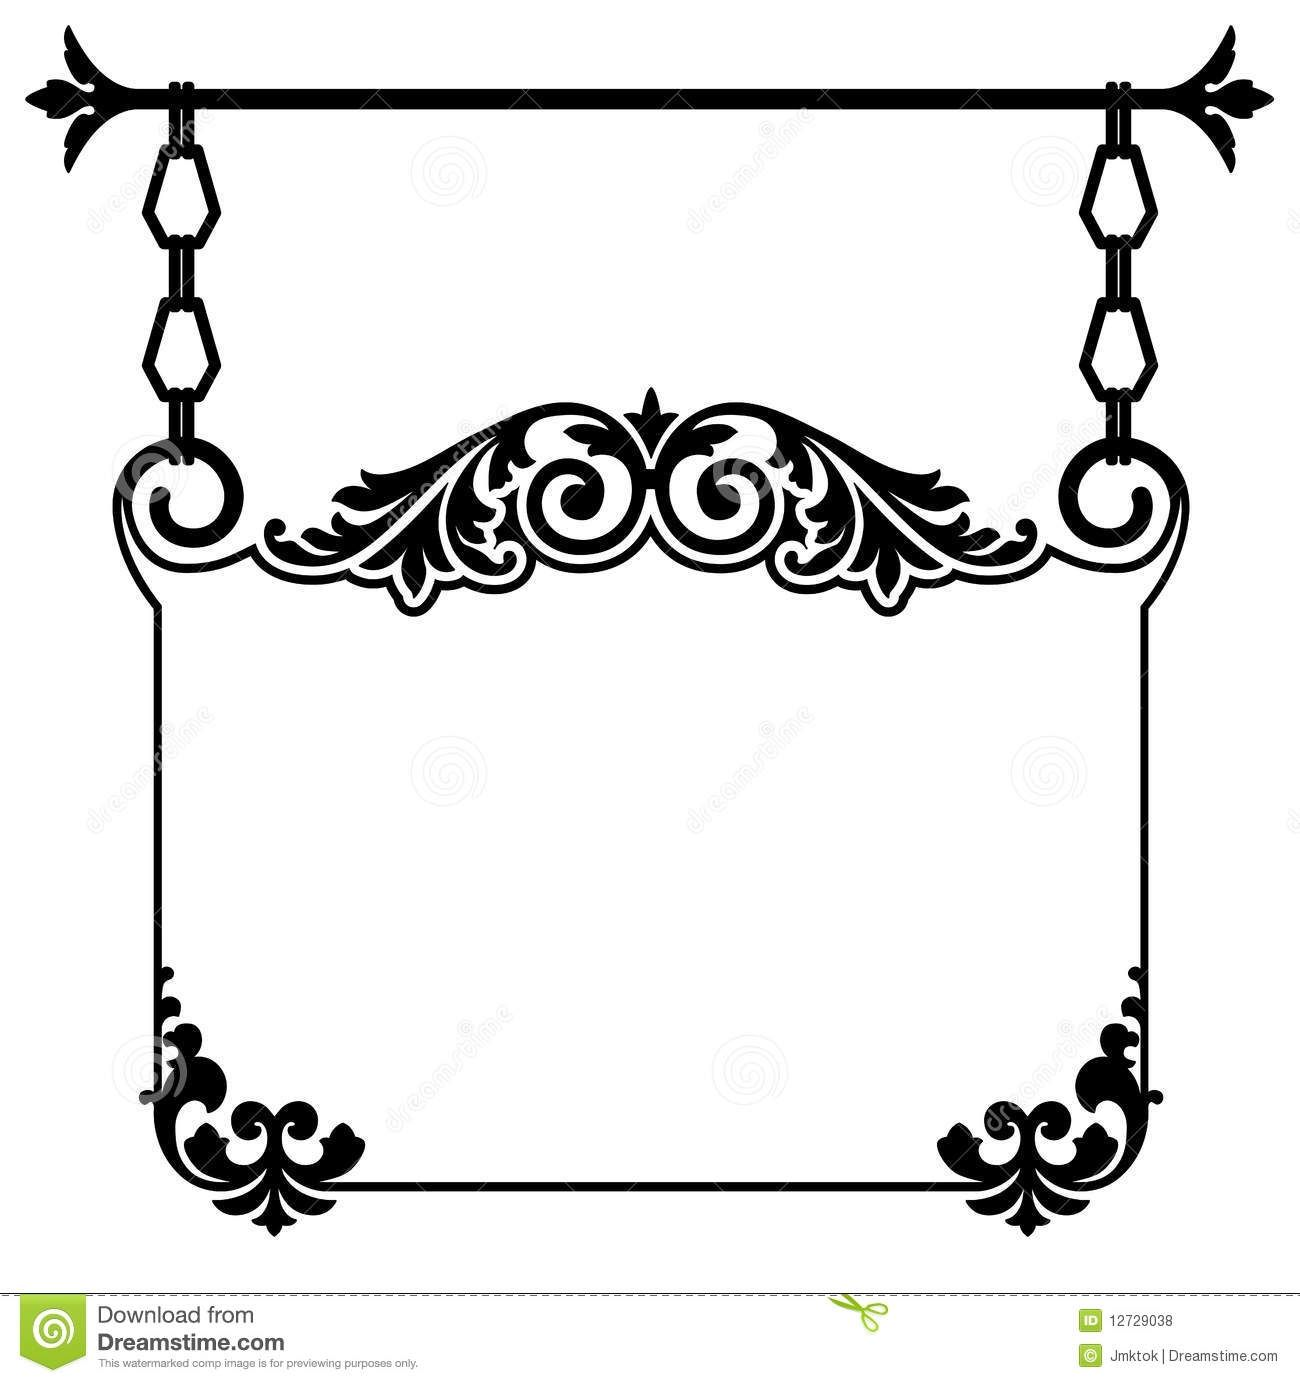 Antique shop sign clipart banner black and white download Vintage Store Signs Clipart ... | Cheyenne basement remodel ... banner black and white download